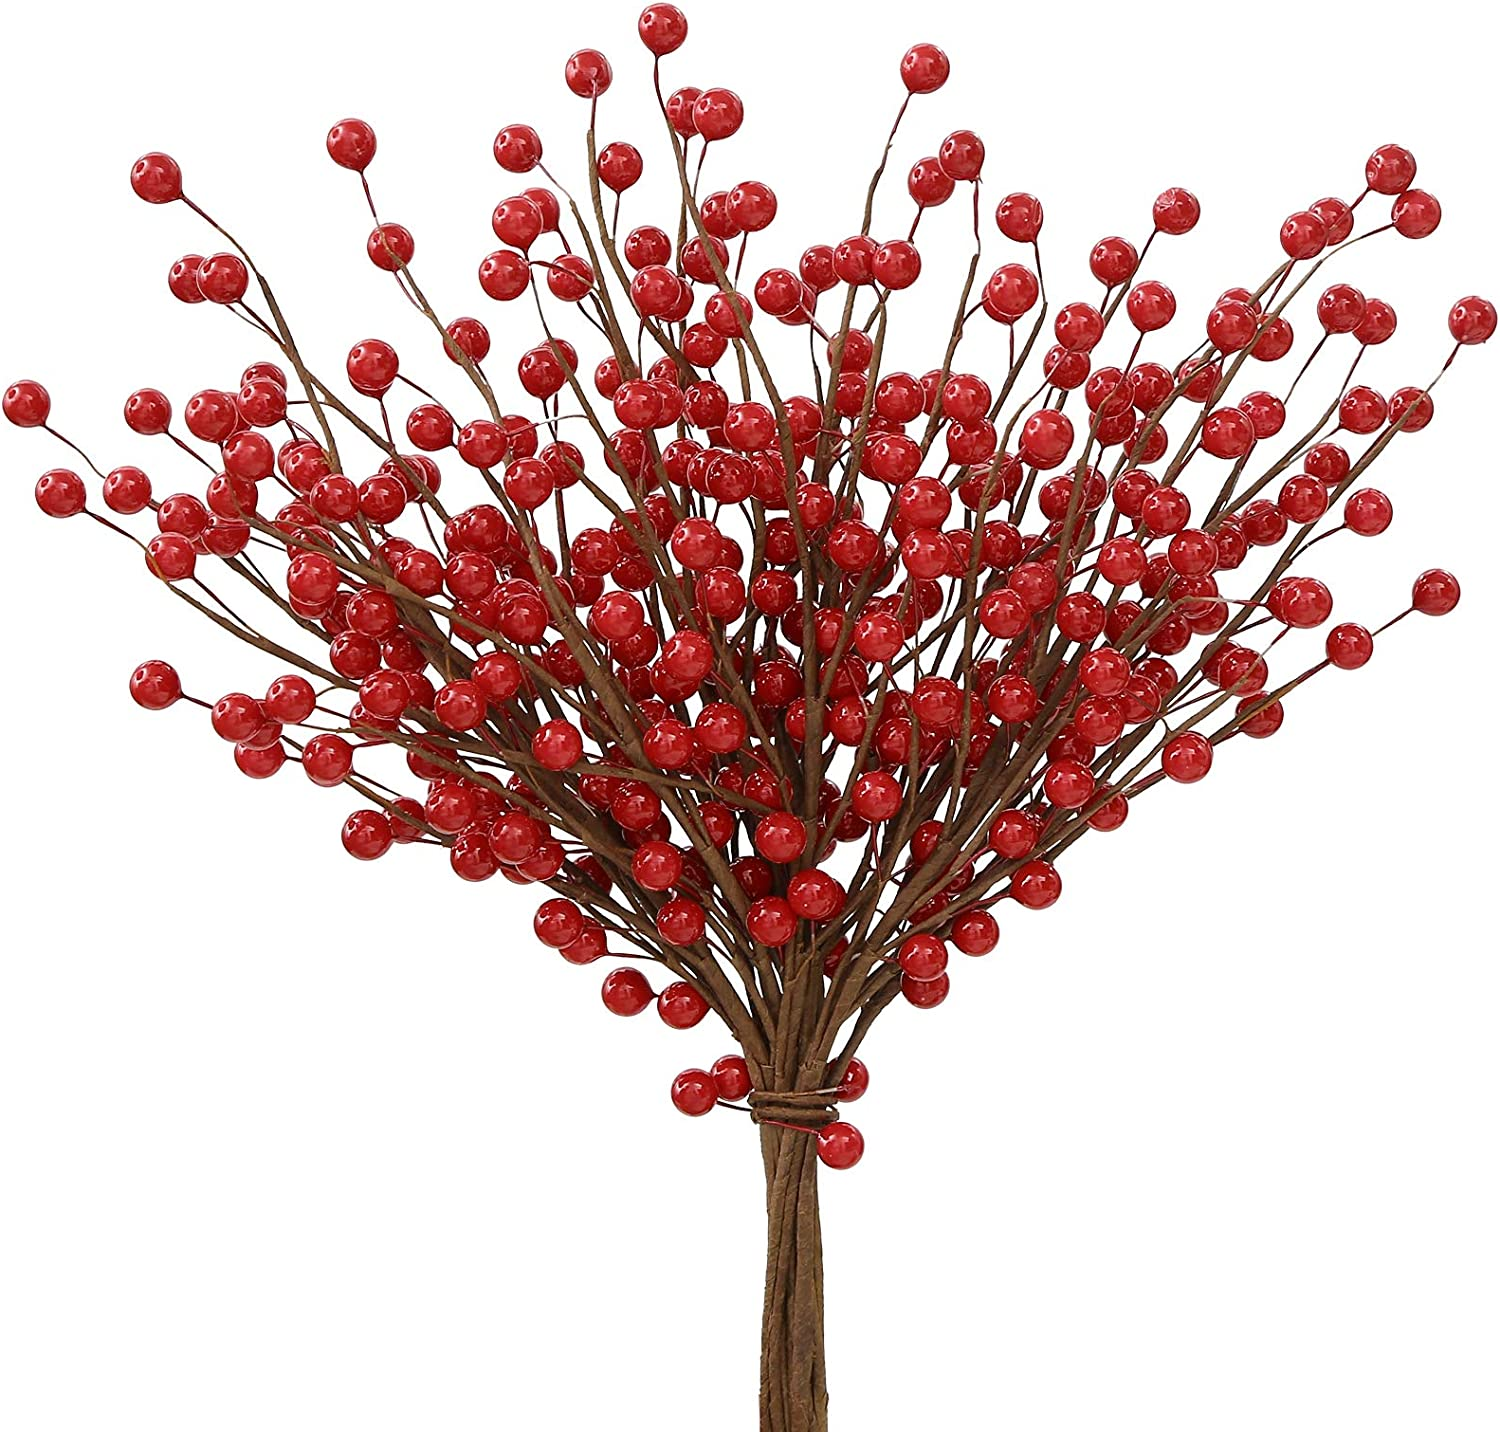 Trimgrace 12 Pack Artificial Red Berry Twig Stems Artificial Holly Berry Picks for Christmas Tree Decorations for Crafts Wedding Holiday Home Wreath Decor